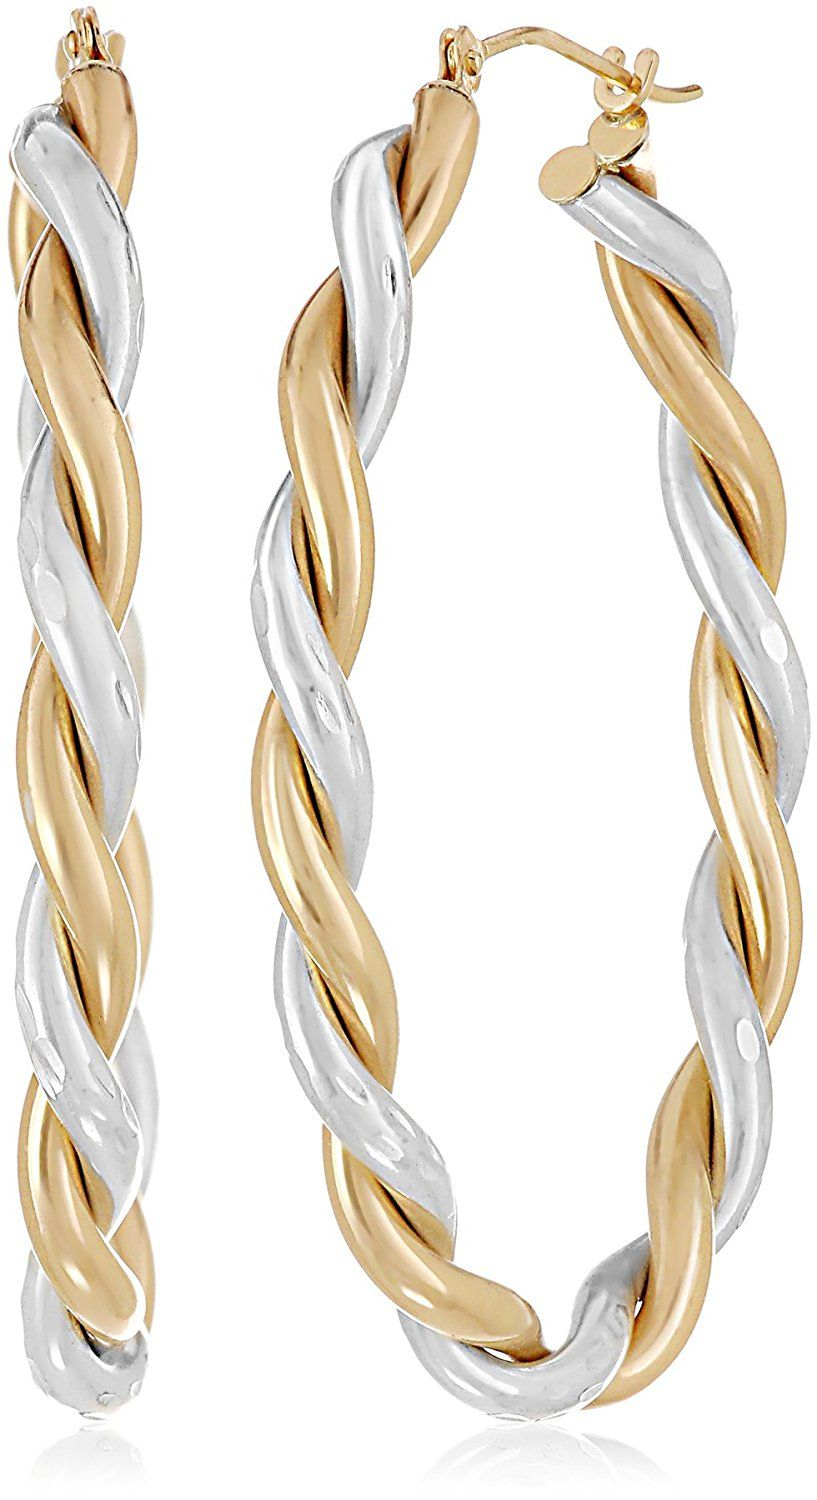 14k Yellow Gold Bonded Sterling Silver Twisted Hoop Earrings Click On The